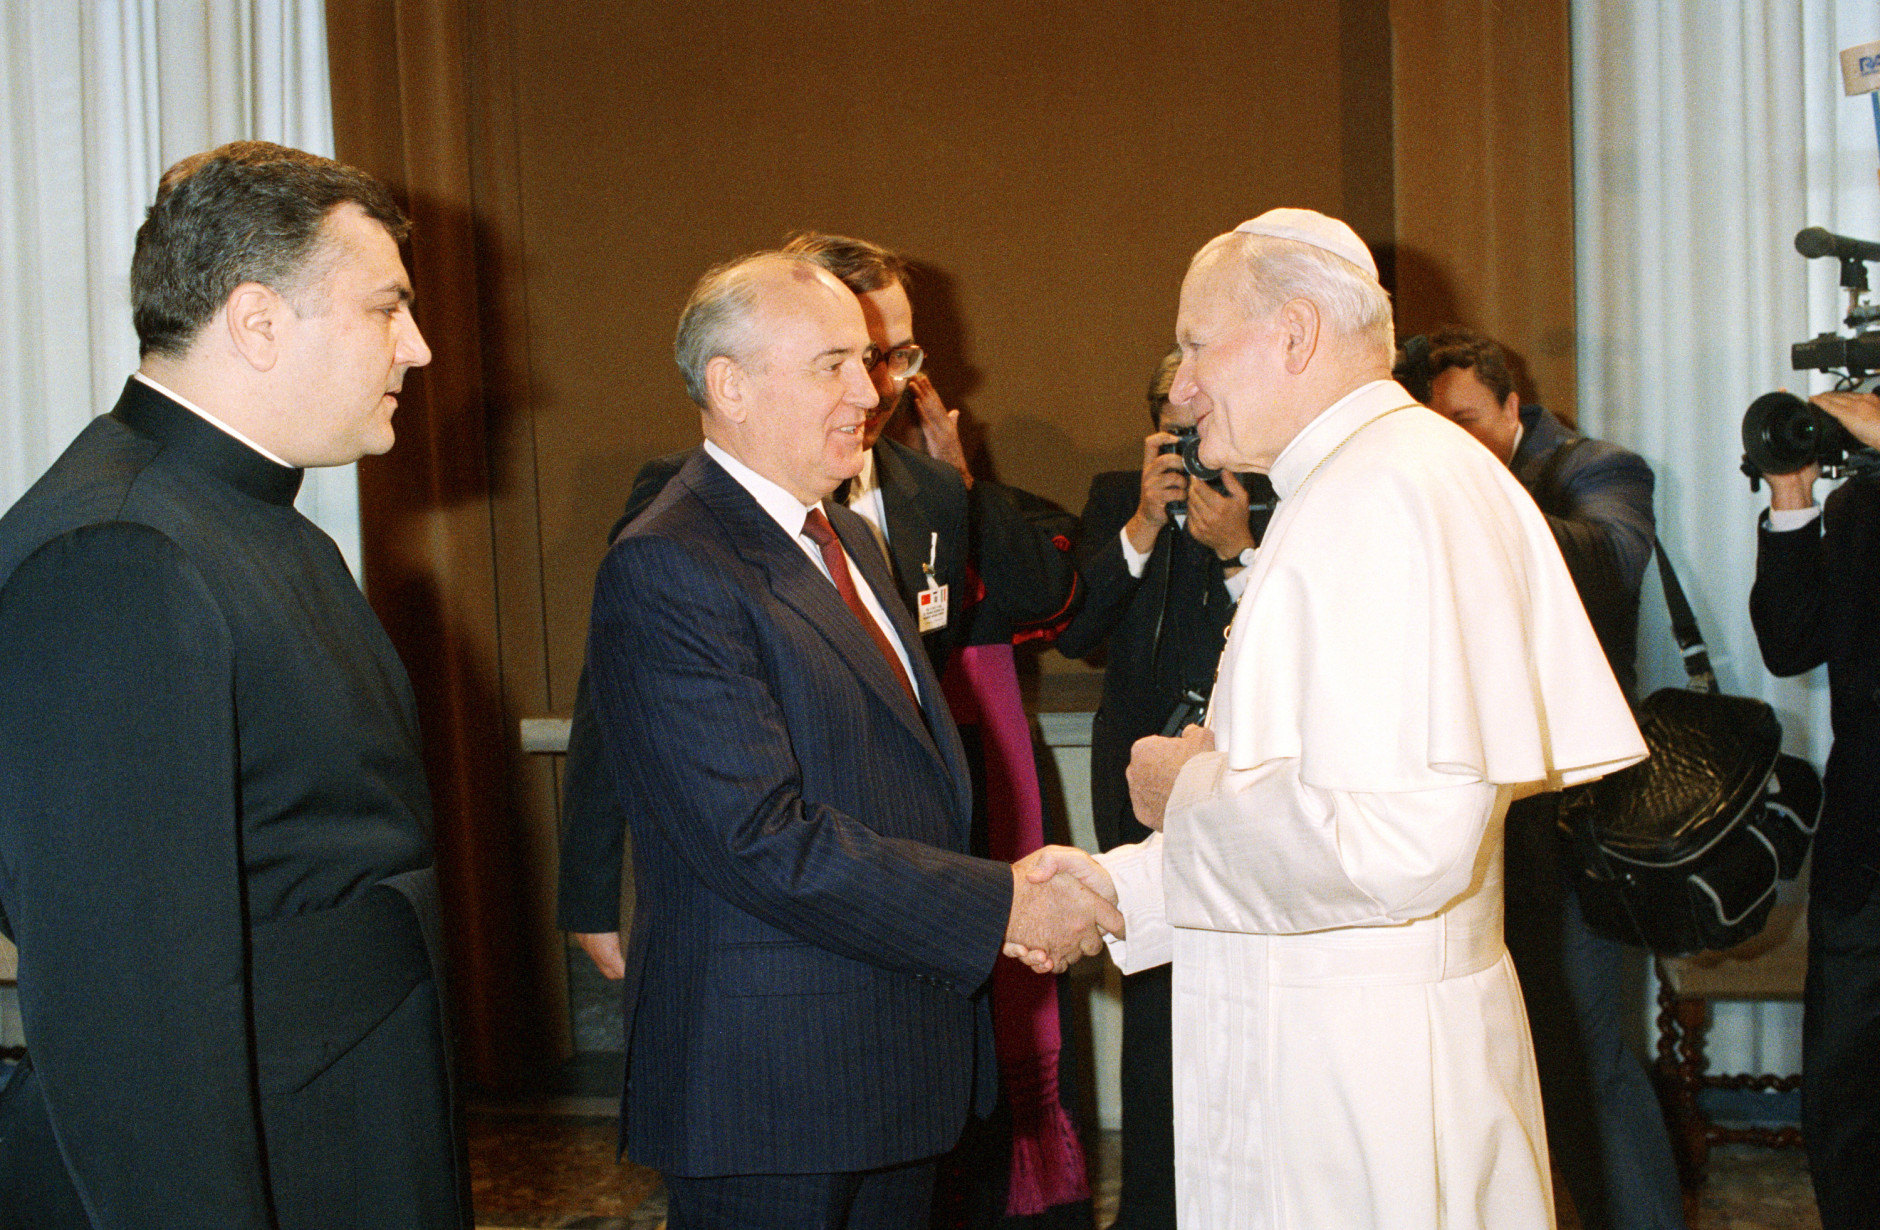 Pope John Paul II shakes hands with Soviet President Mikhail Gorbachev in the first ever meeting between a Kremlin chief and a Pontiff, at the Vatican, Friday, Dec. 1, 1989. (AP Photo/Massimo Sambucetti)